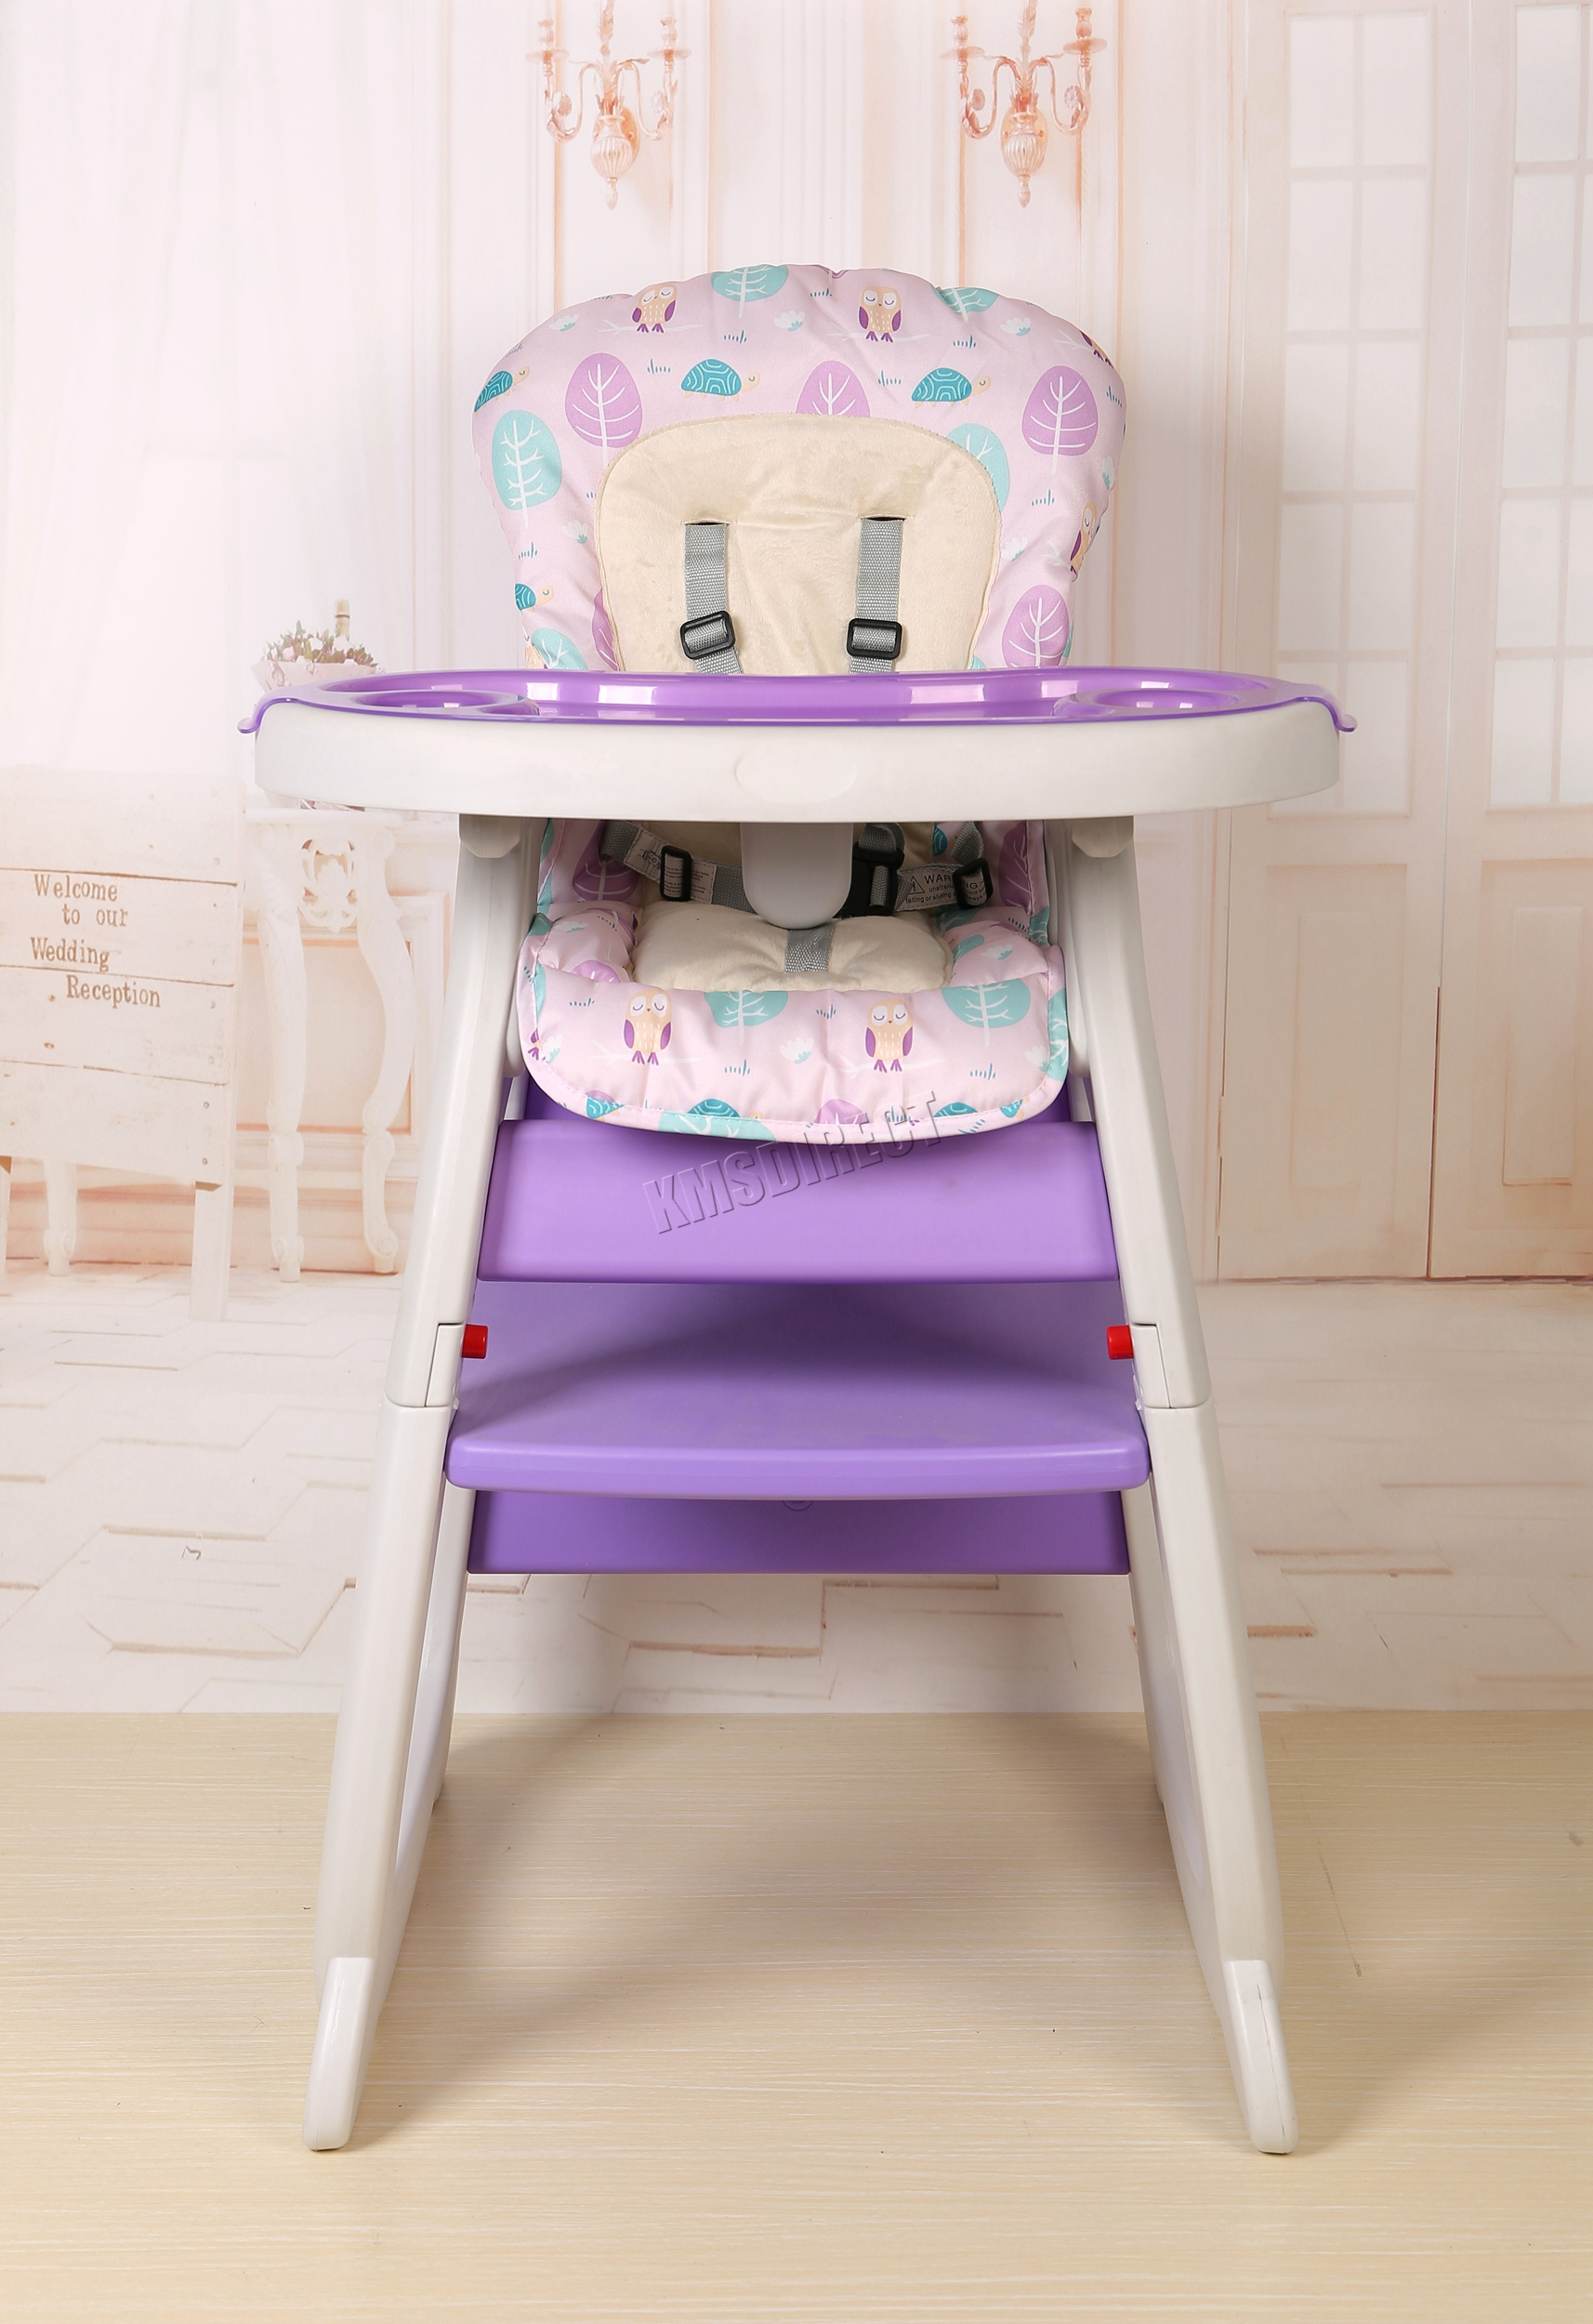 baby table chair dining set with upholstered chairs foxhunter highchair infant high feeding seat 3in1